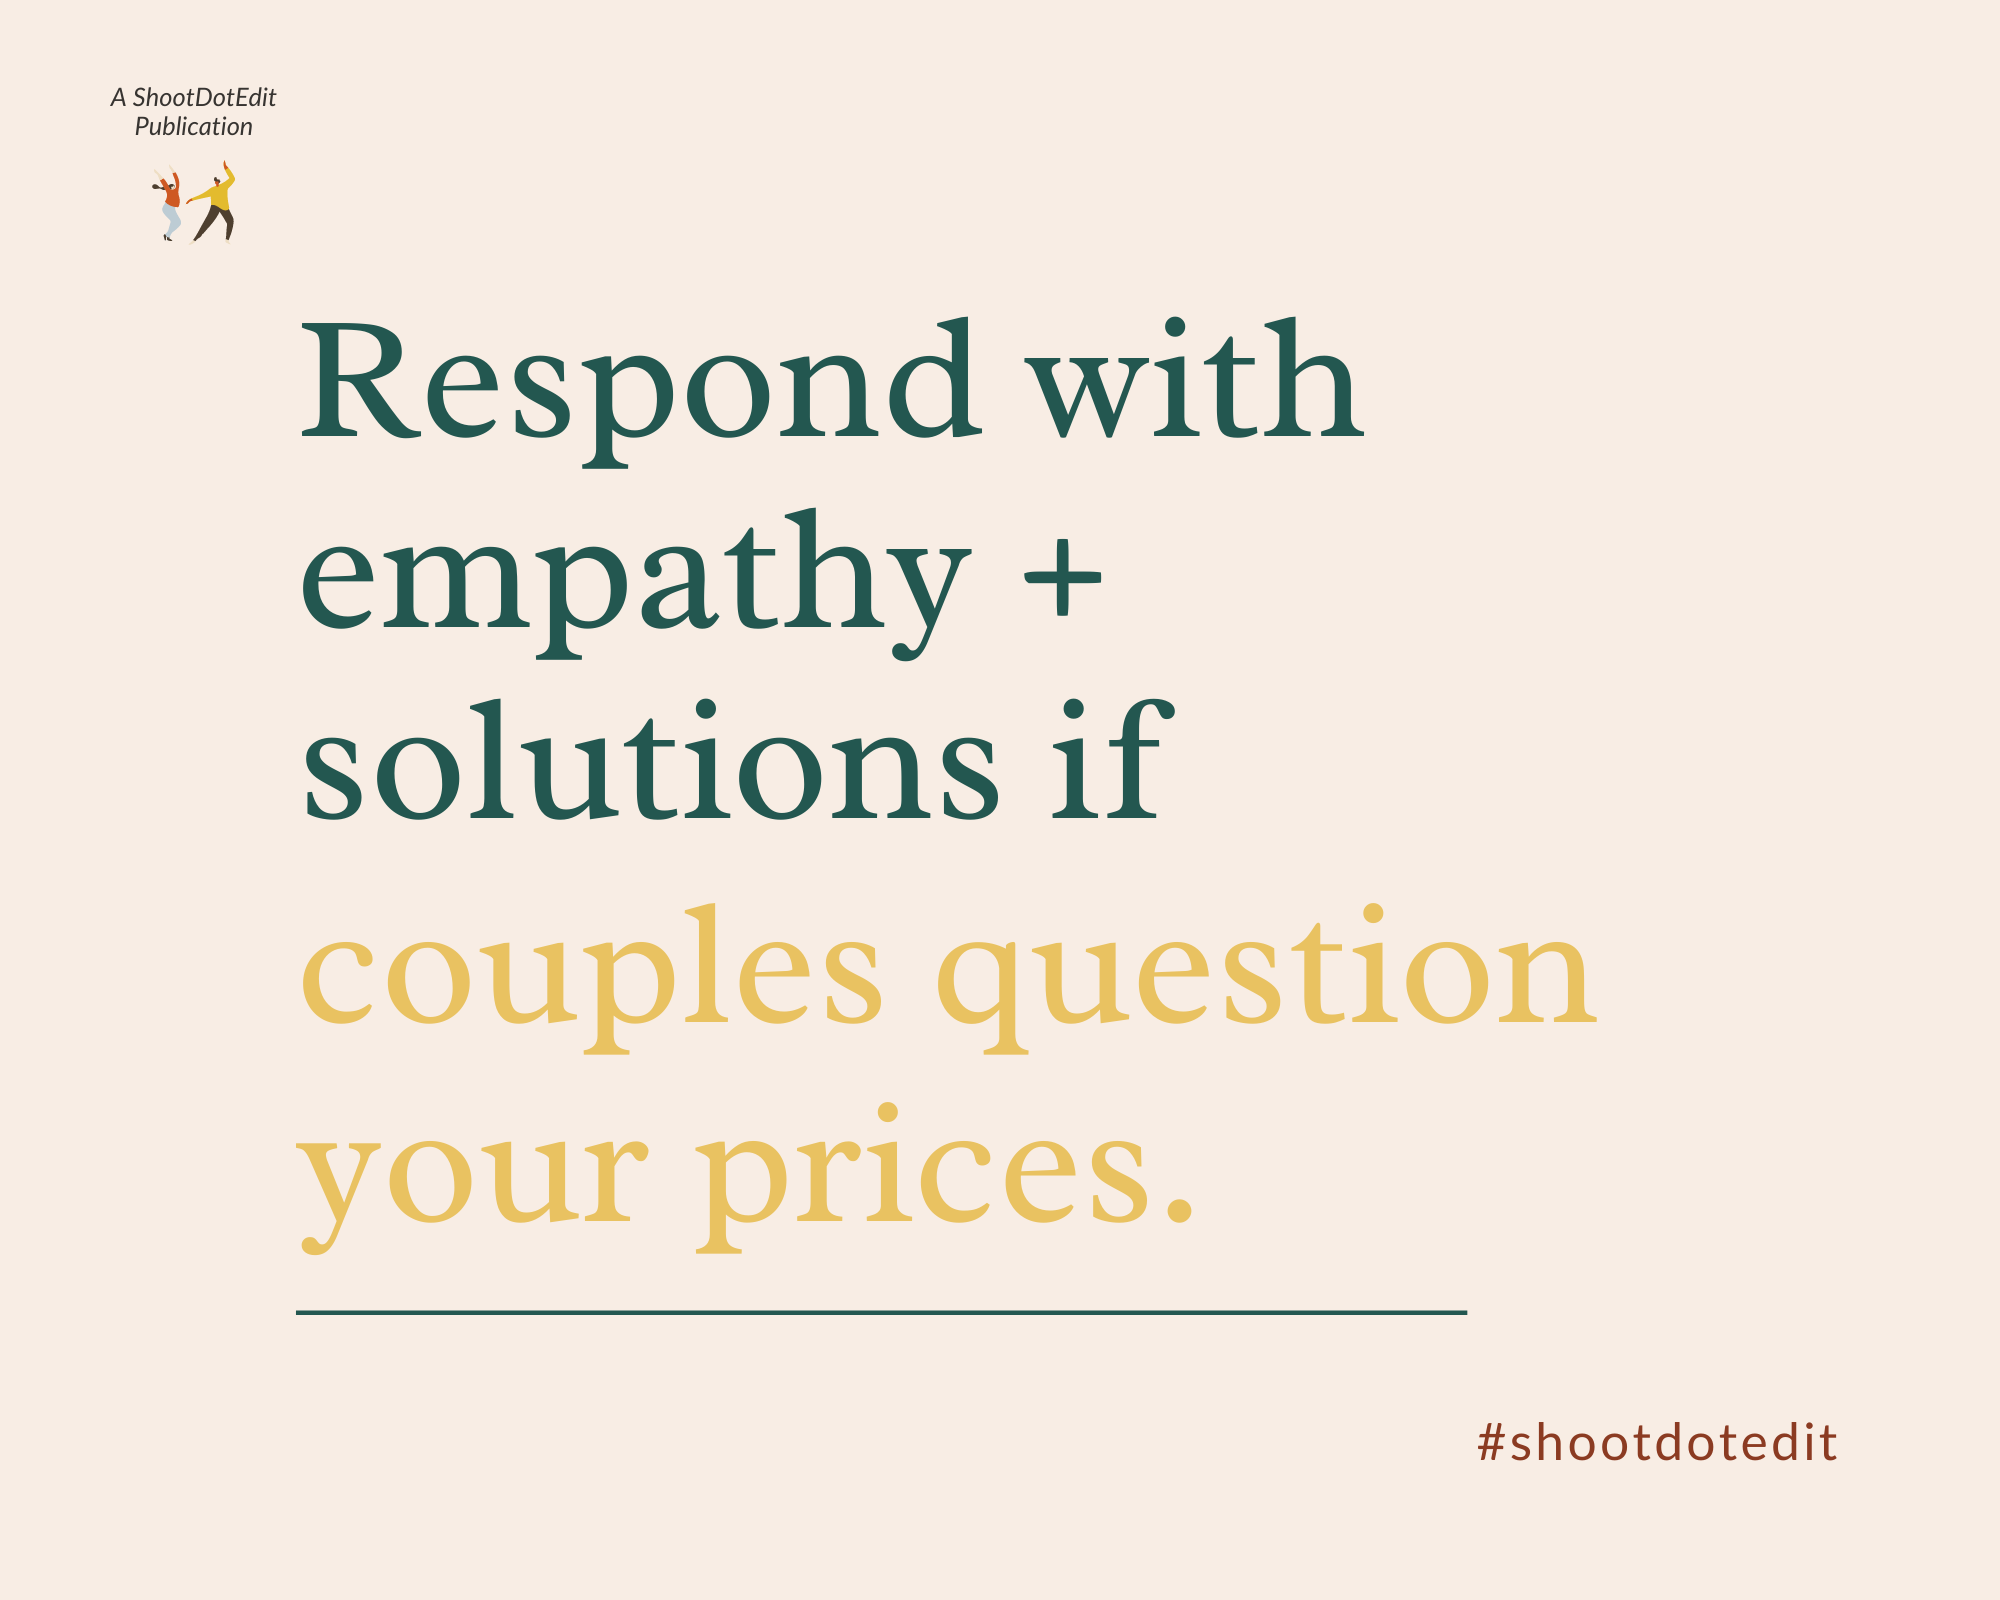 Infographic stating respond with empathy and solution if couples question your prices